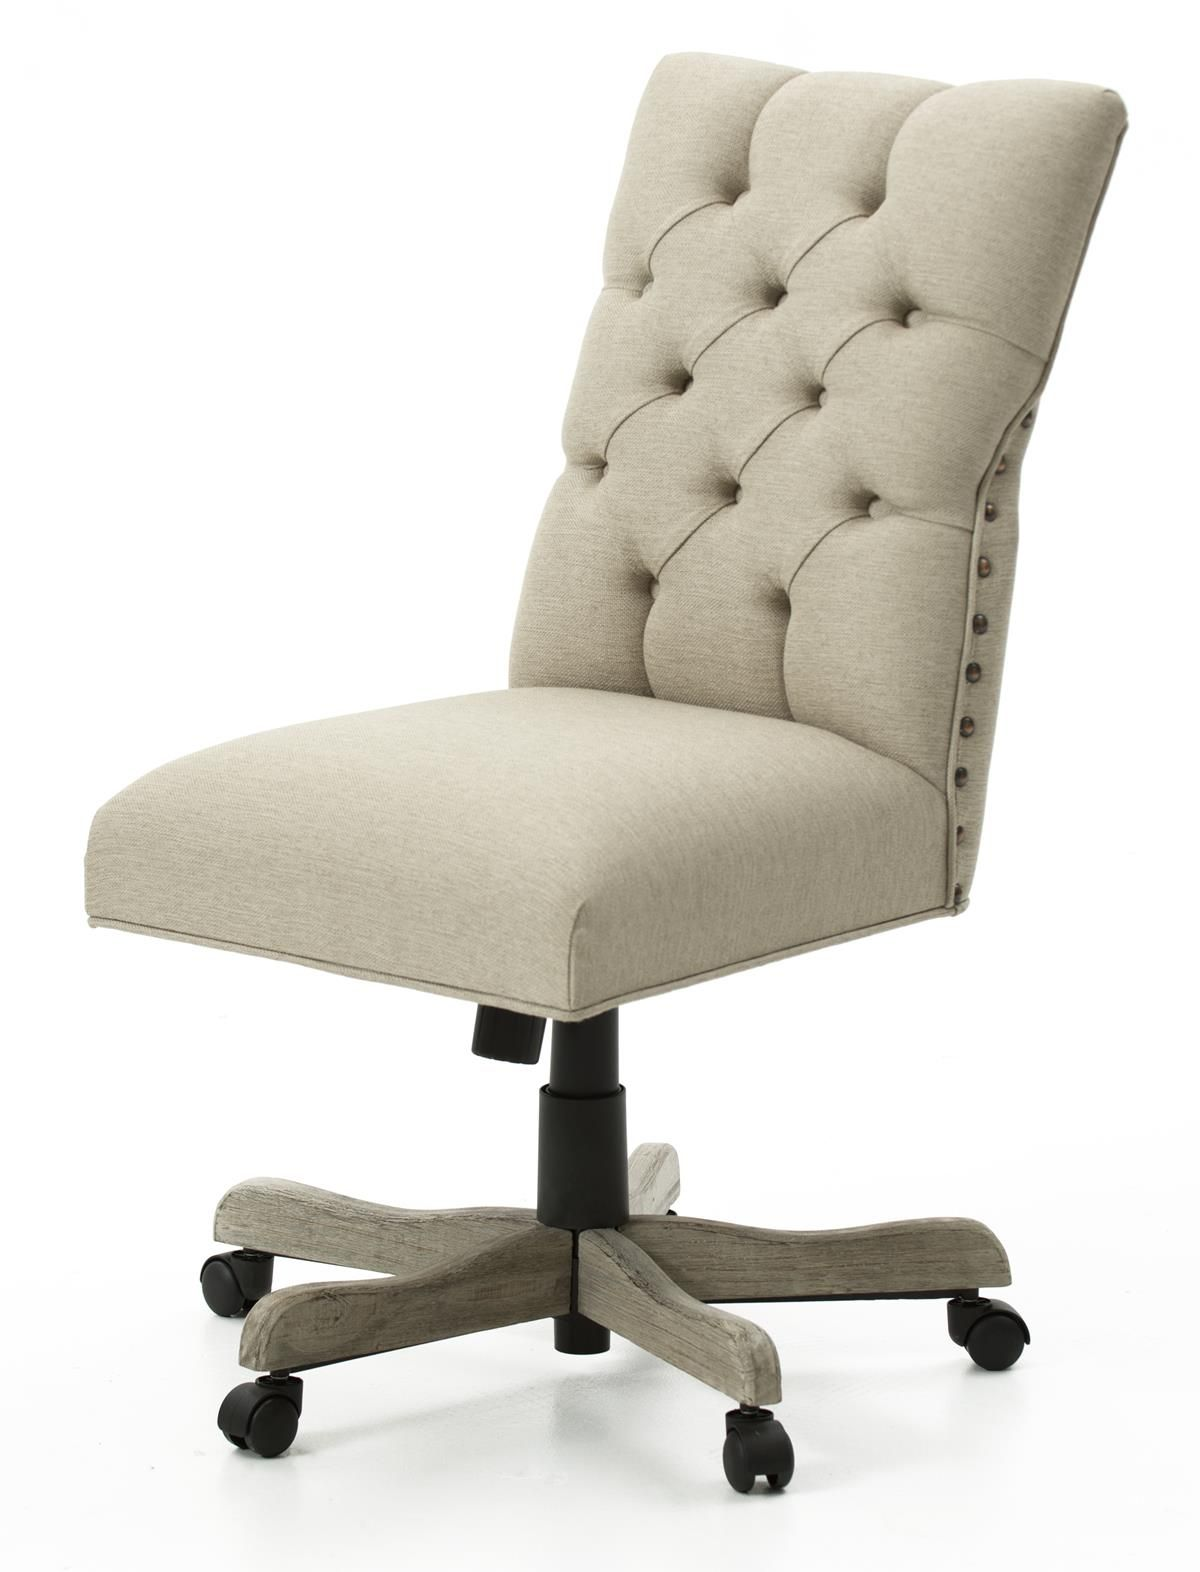 Tufted Office Chair From Weir S Outlet Great Furniture On Weirsfurniture